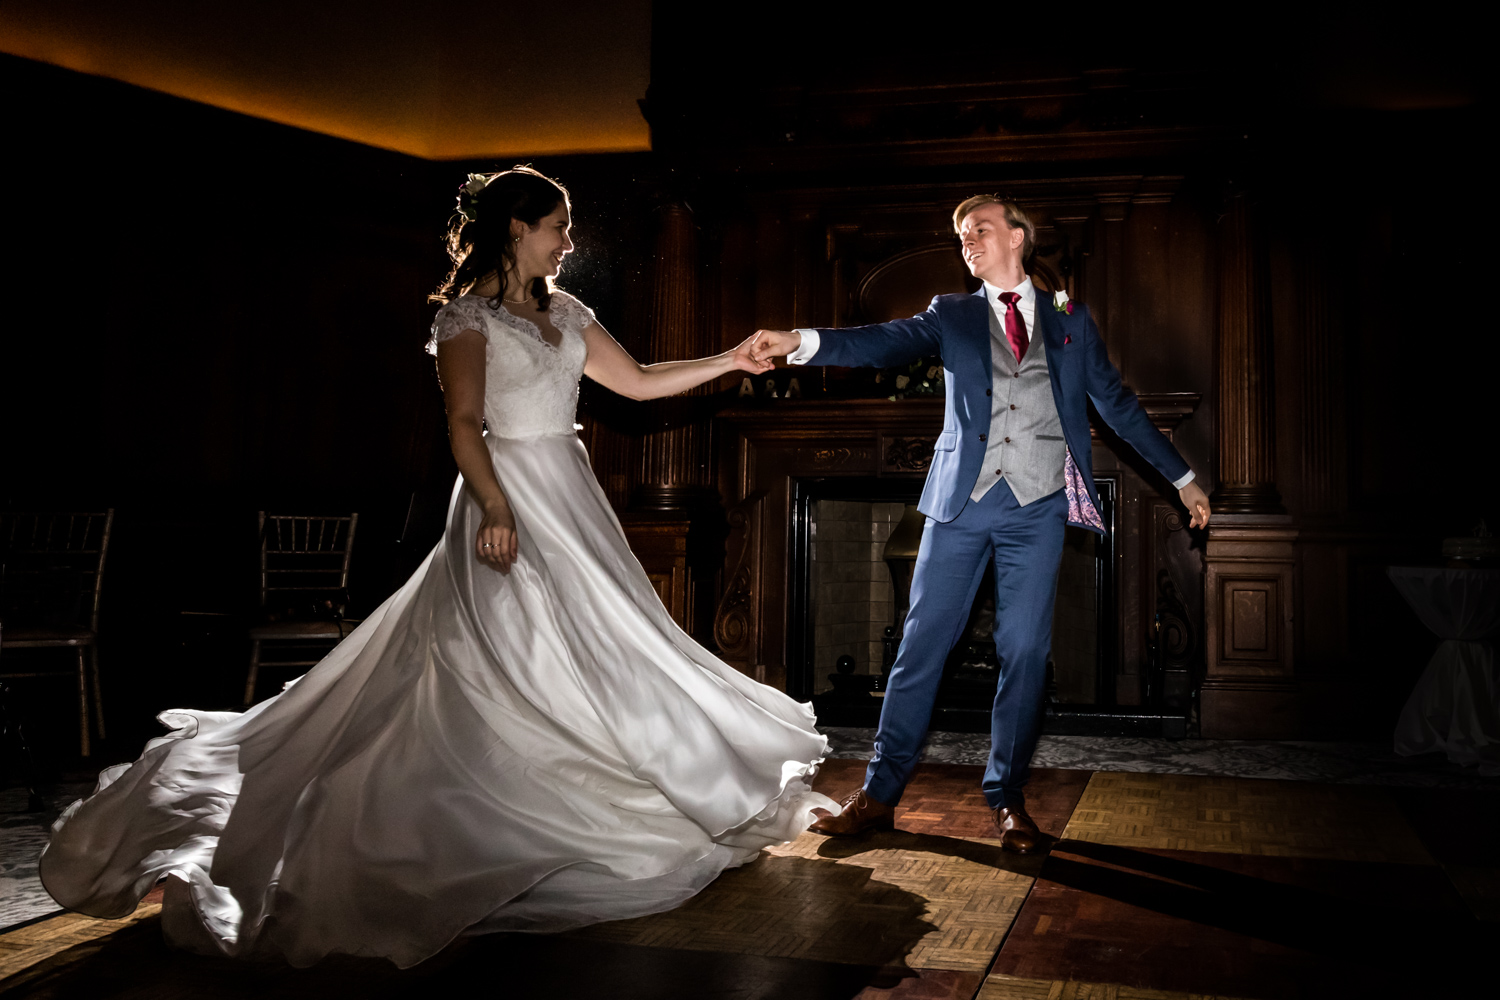 Principal Hotel York Wedding Photographer - couple's first dance